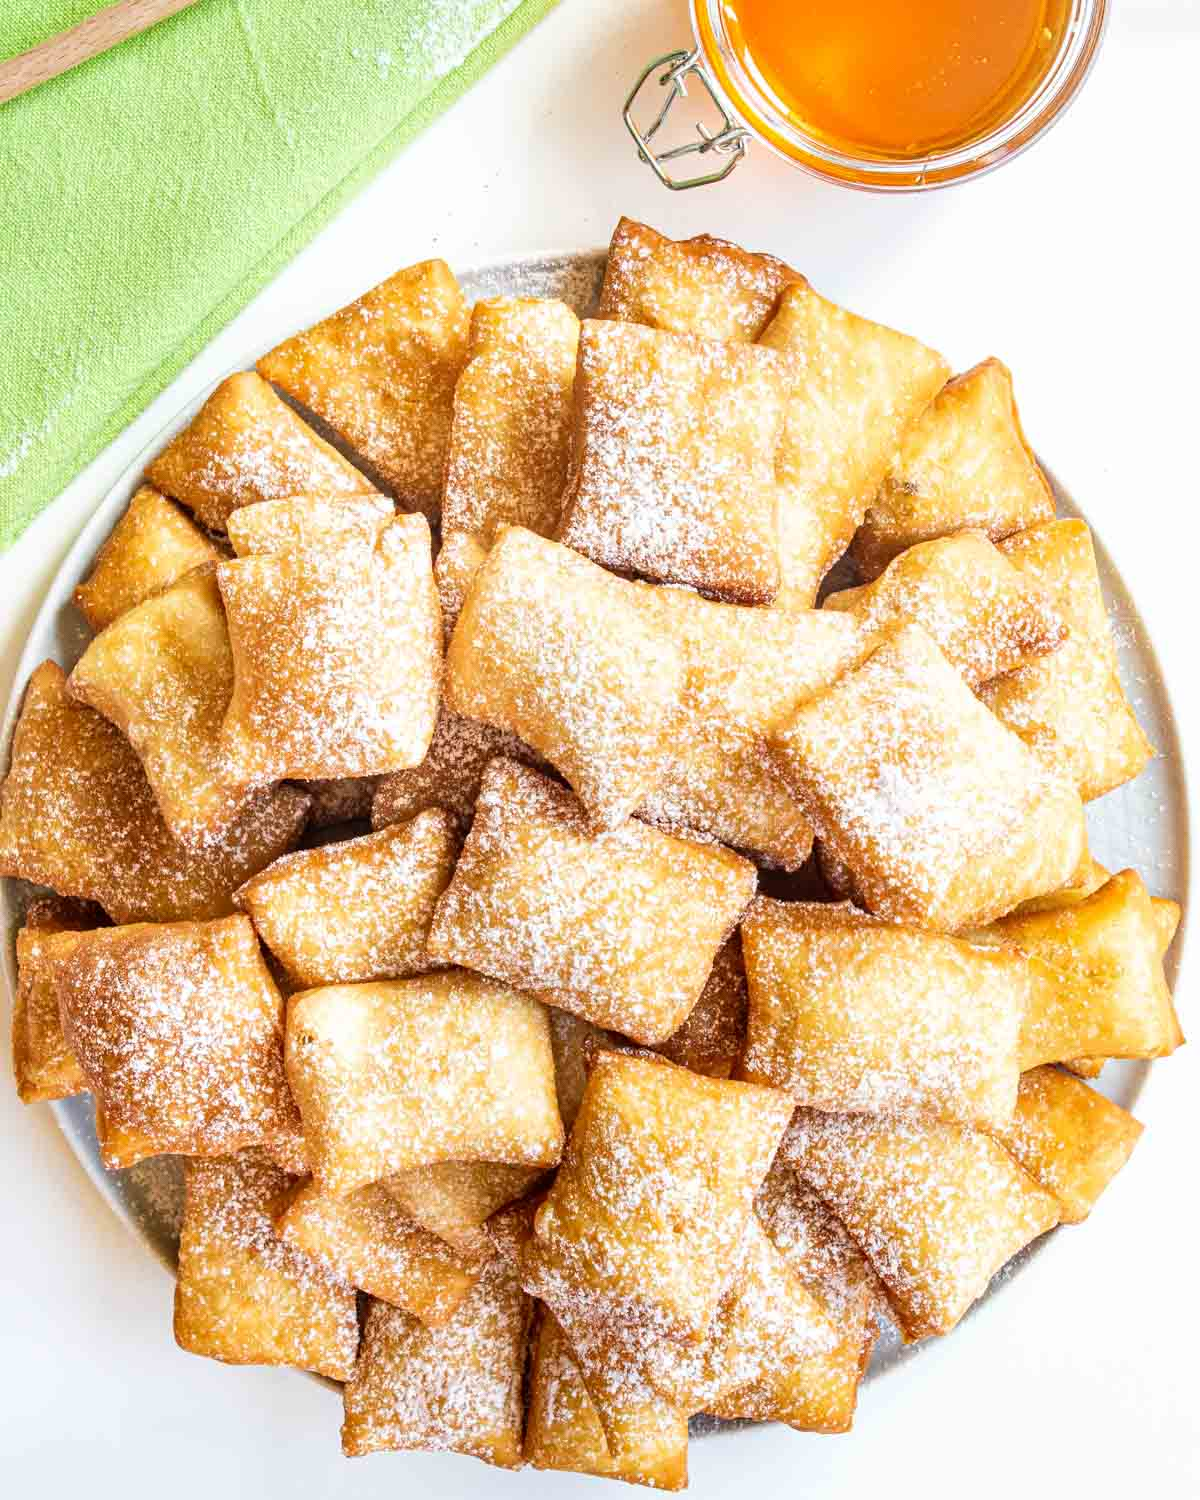 freshly fried sopappilas on a white plate sprinkled with powdered sugar.